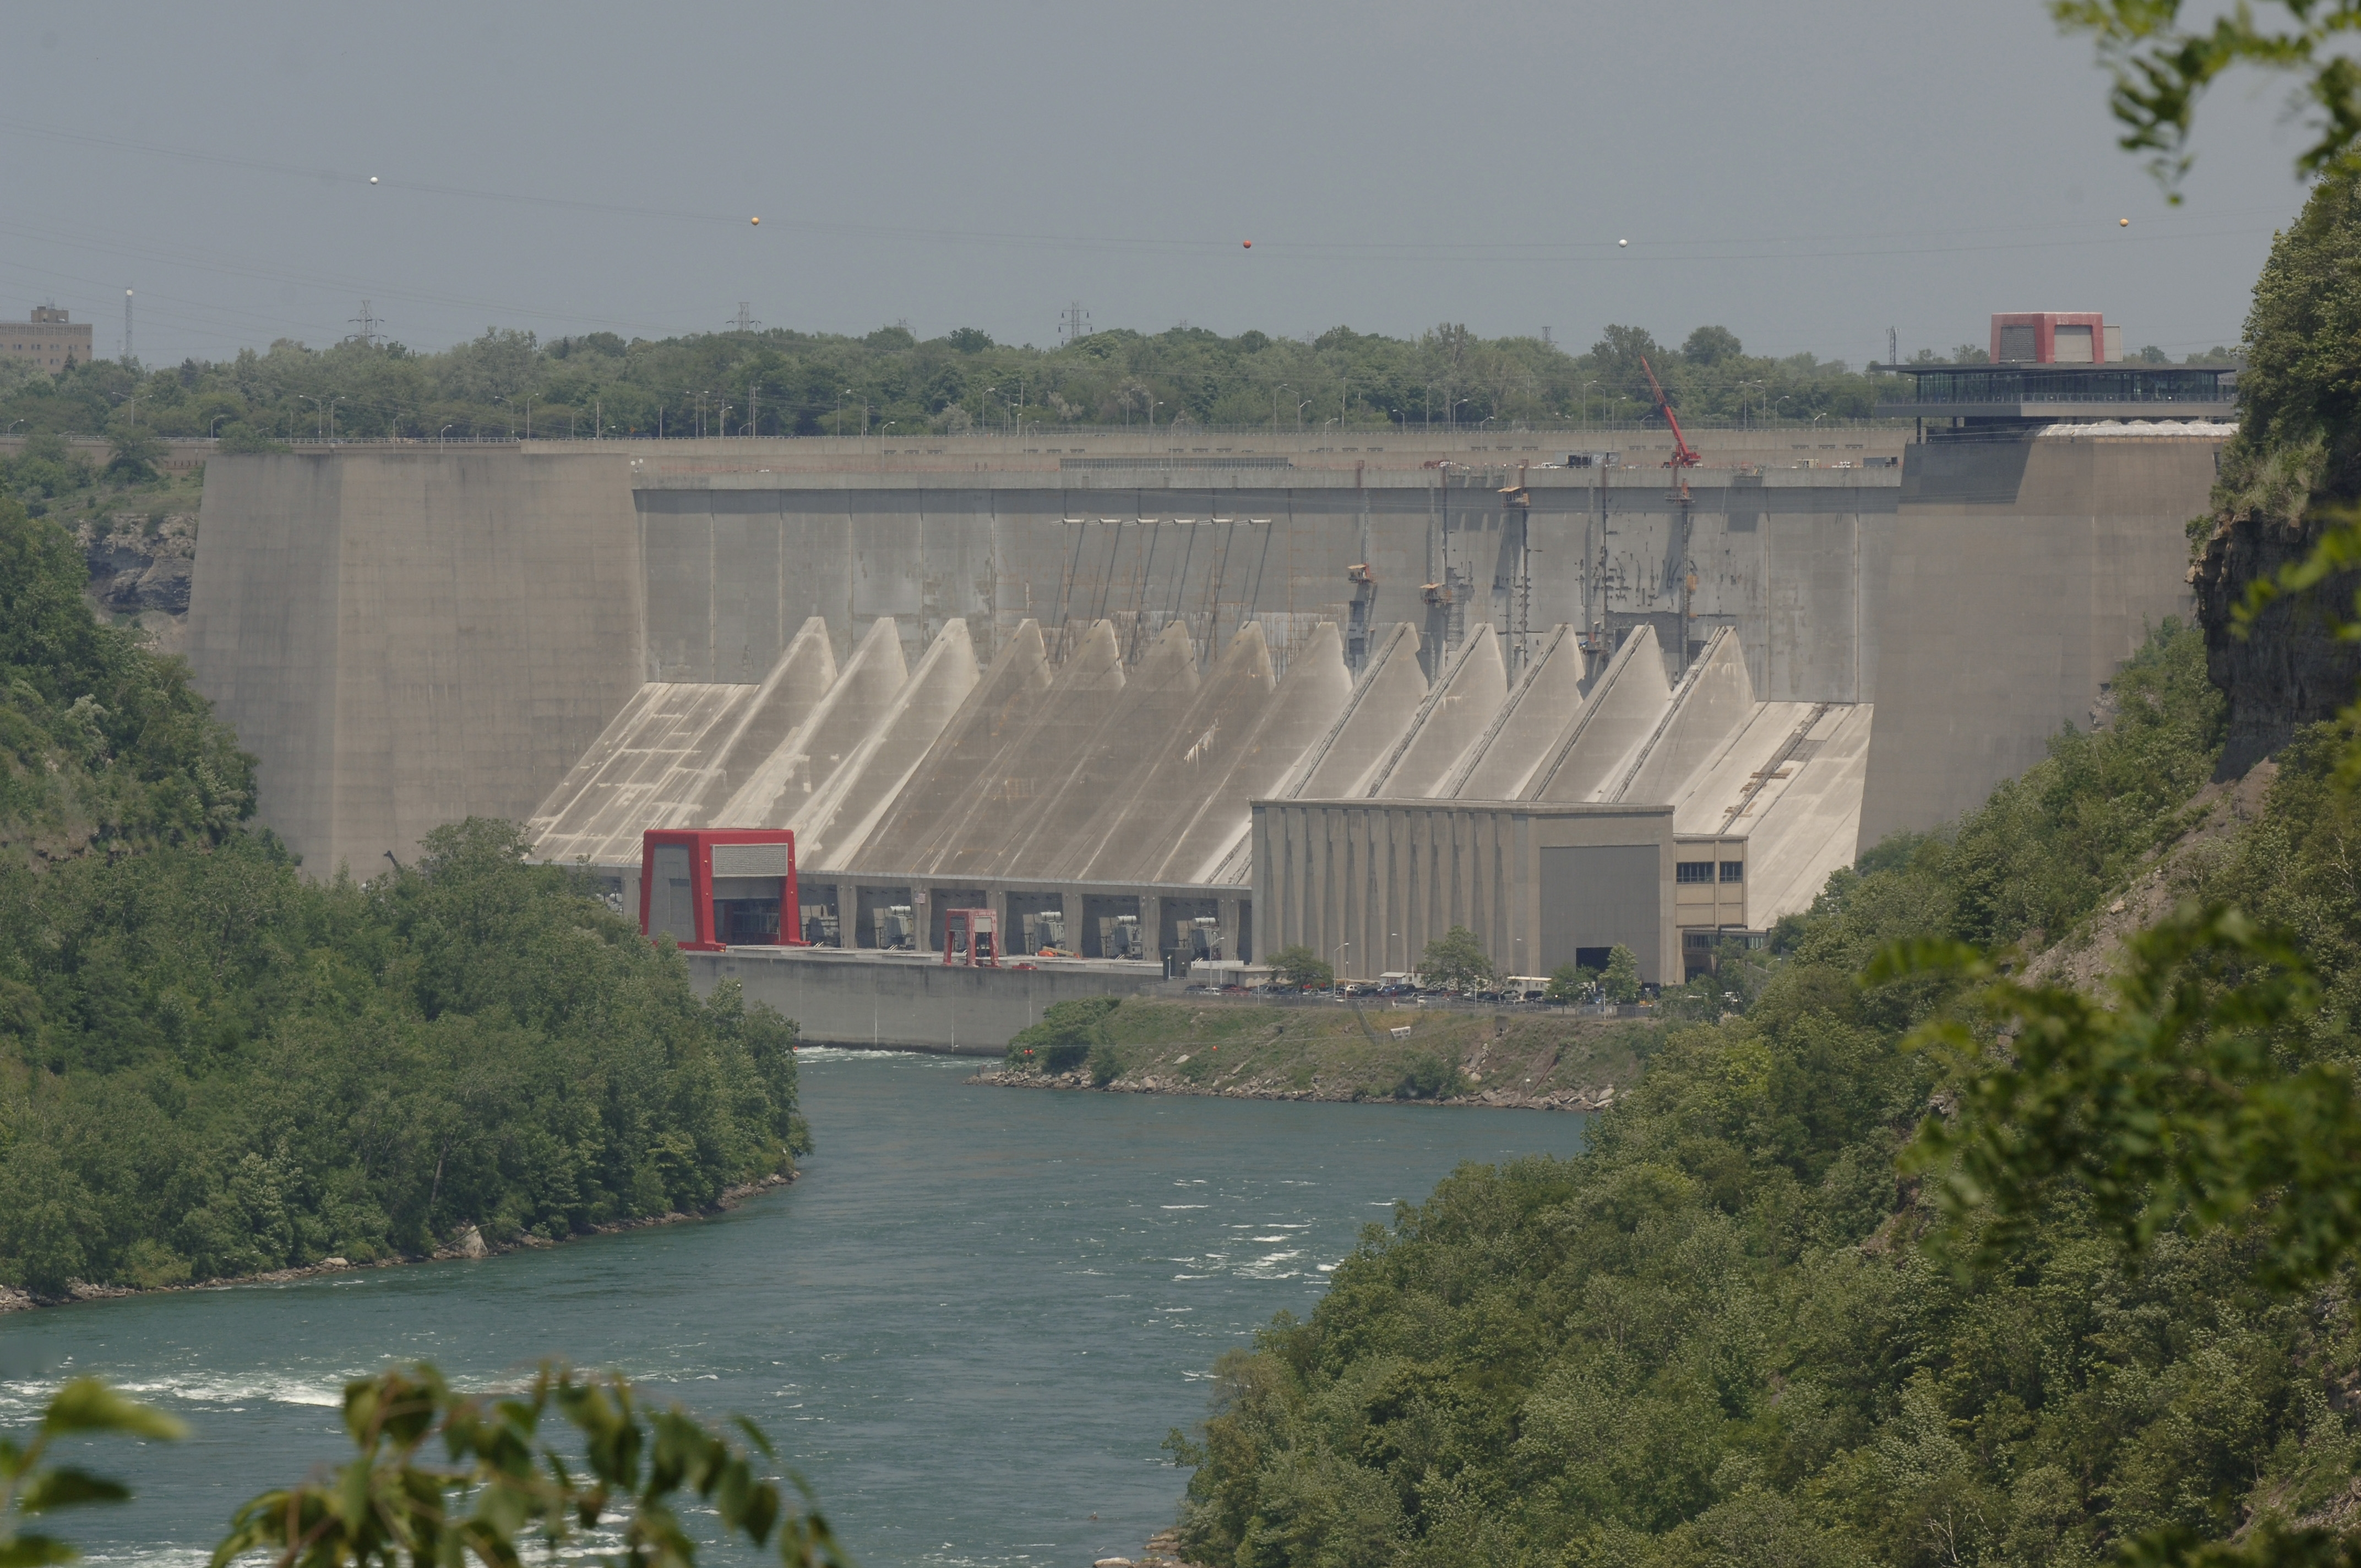 New York Power Authority's 2007 relicensing agreement for the Niagara Power Project in Lewiston has been a catalyst for funding to generate economic development in Buffalo Niagara region. Allocations of low-cost hydropower have helped dozens of businesses.